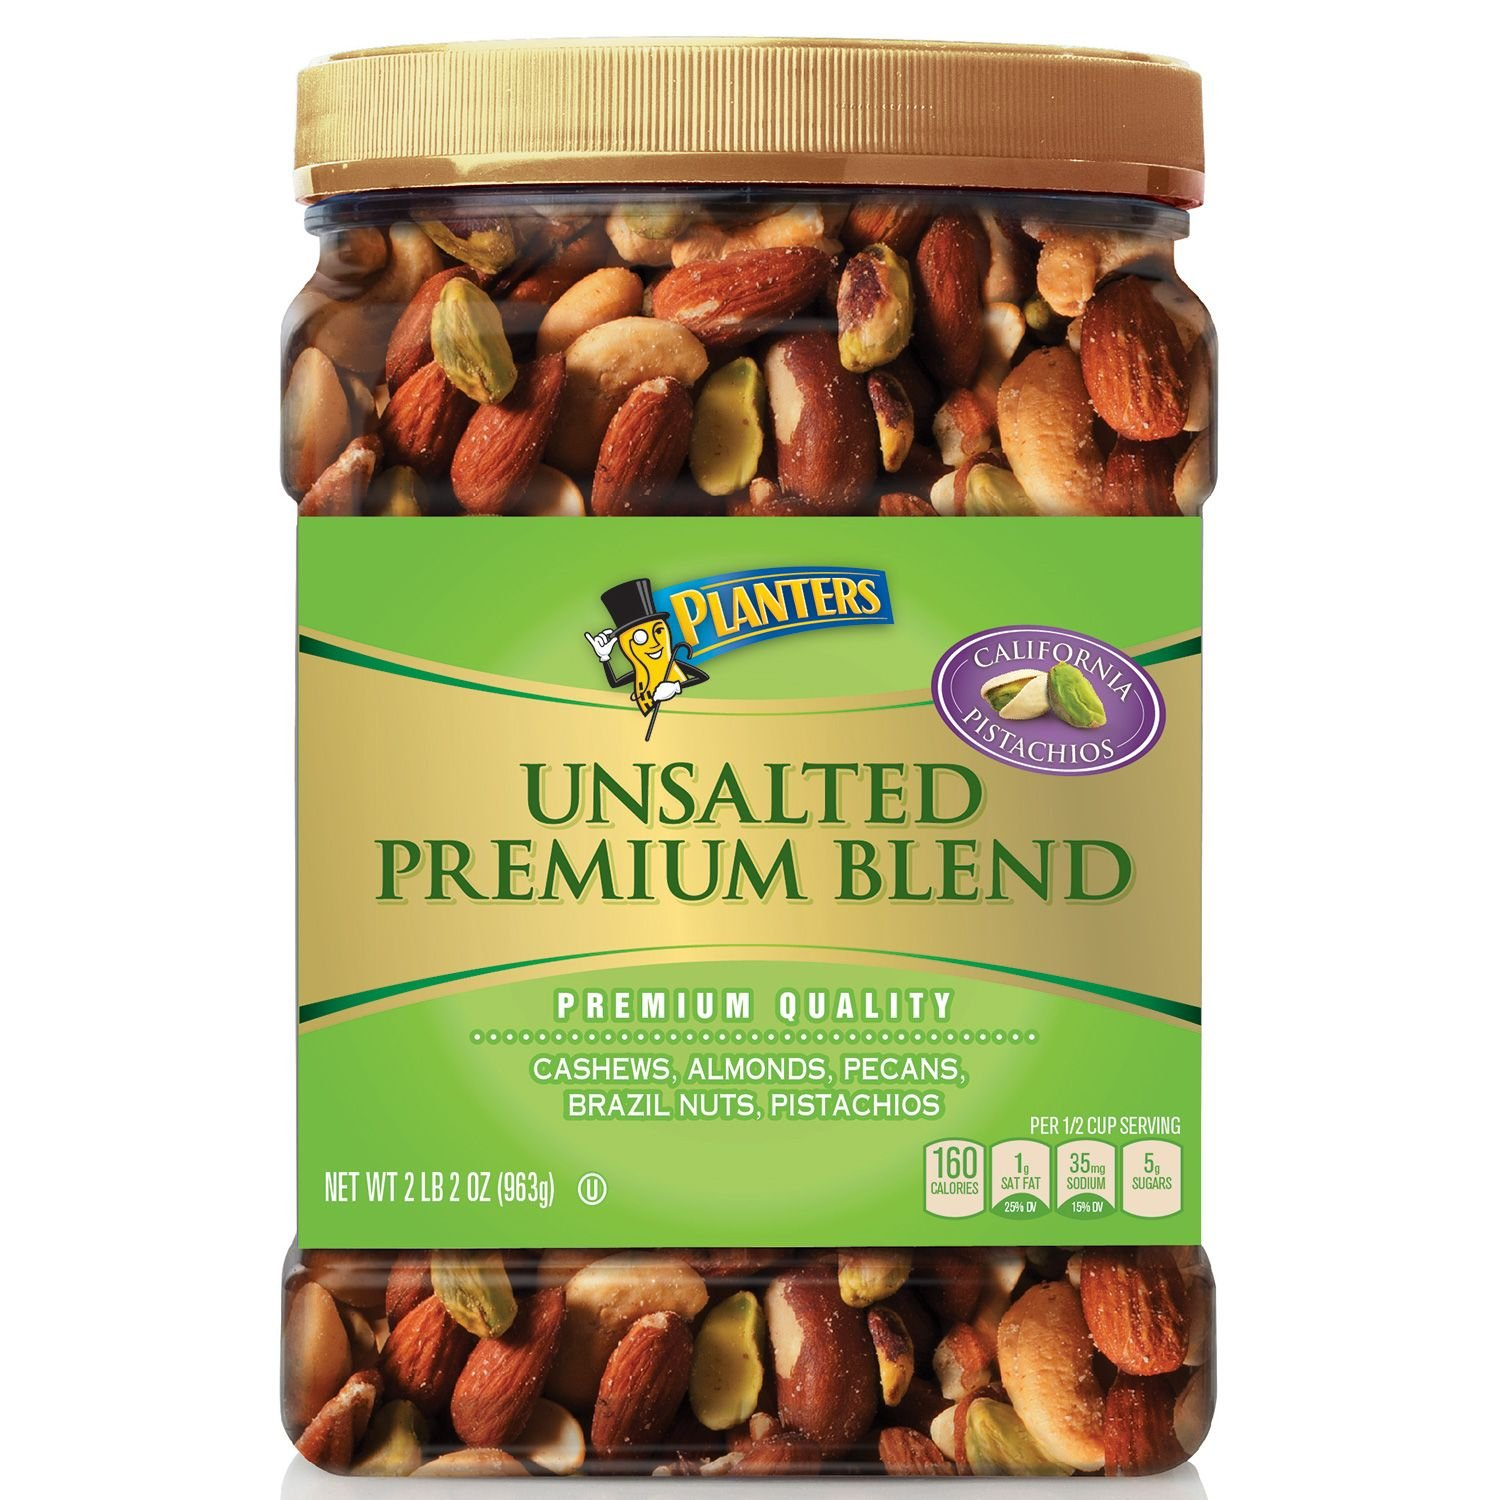 Planters Unsalted Premium Blend (34.5 oz.) (pack of 6) by Planters